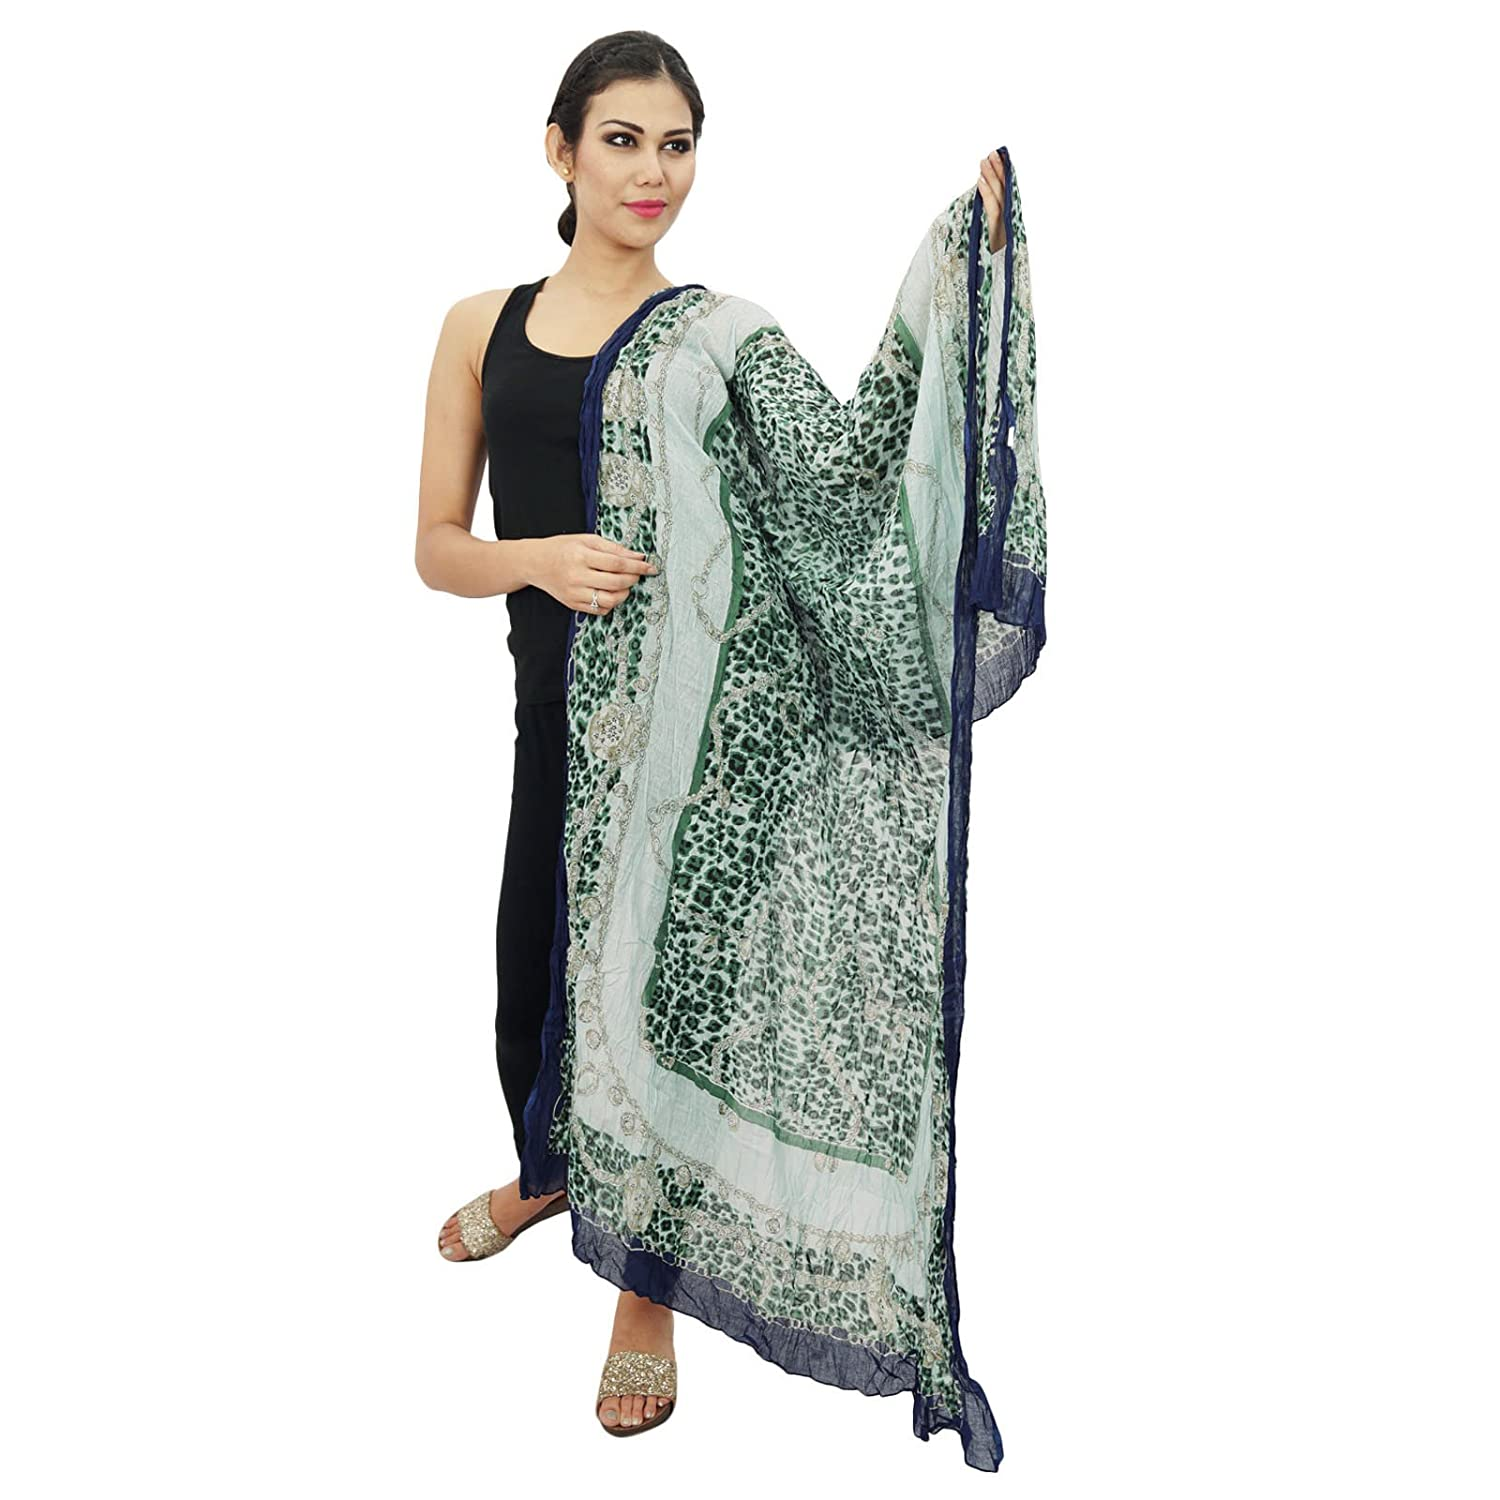 Long Cotton Dupatta Stole Women Wear Neck Wrap Indian Scarves Chunni Head Scarf